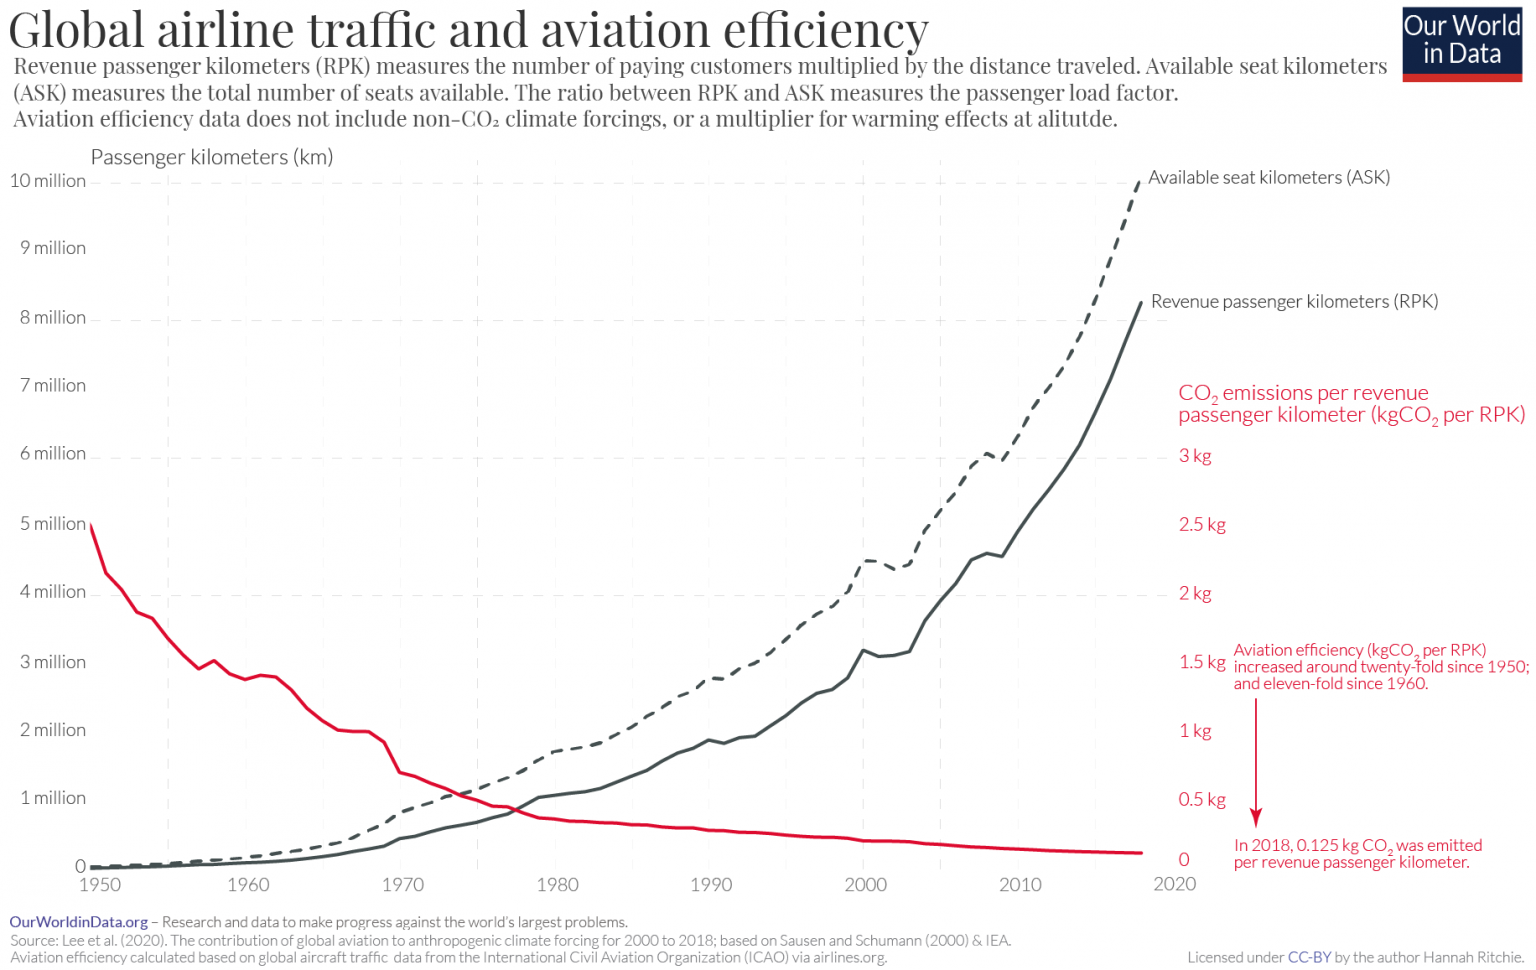 Graph showing global airline traffic and aviation efficiency in passenger kilometers overtime from 1950 to 2020.